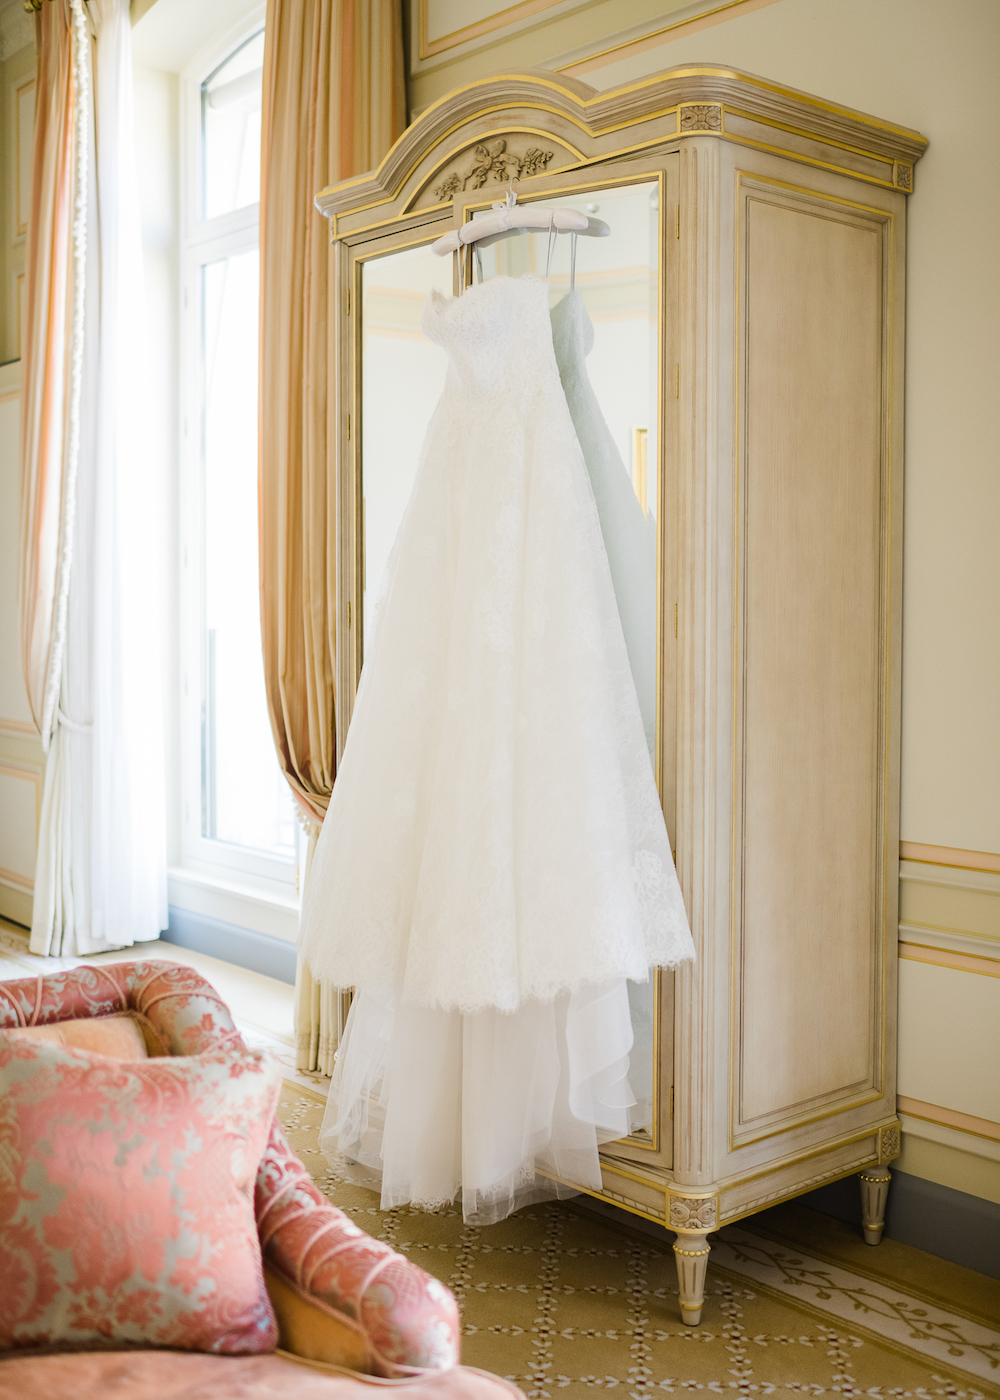 Monique Lhuillier wedding dress at the Ritz Paris